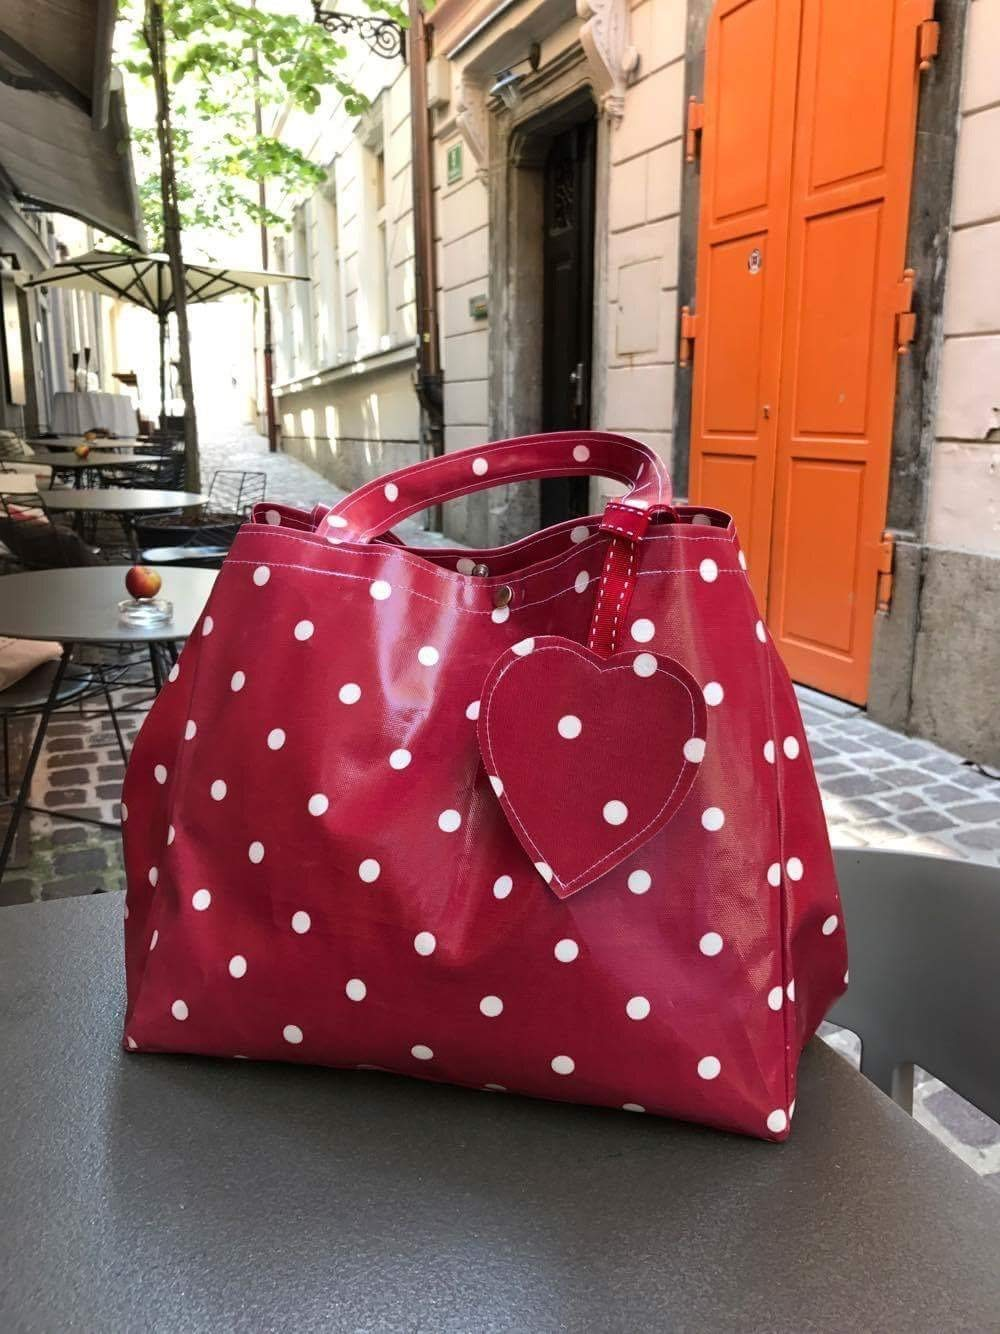 Red Polka Dot Market Tote Bag Purse Fashion Gift for Her - handmade-bags